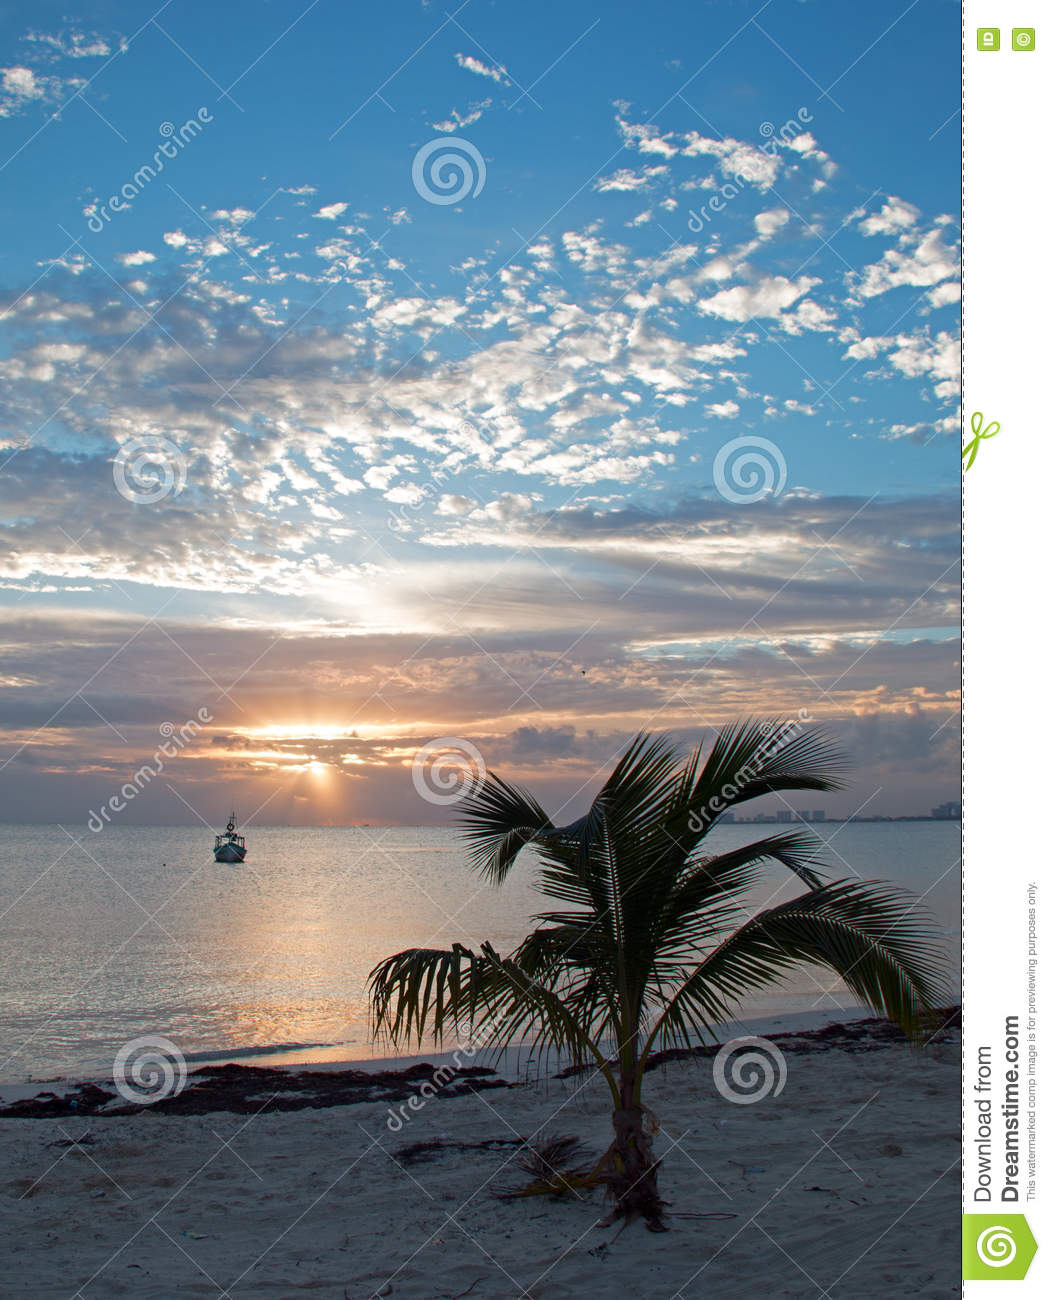 Sunrise over Puerto Juarez Bay, Beach, and fishing boat in Cancun Mexico